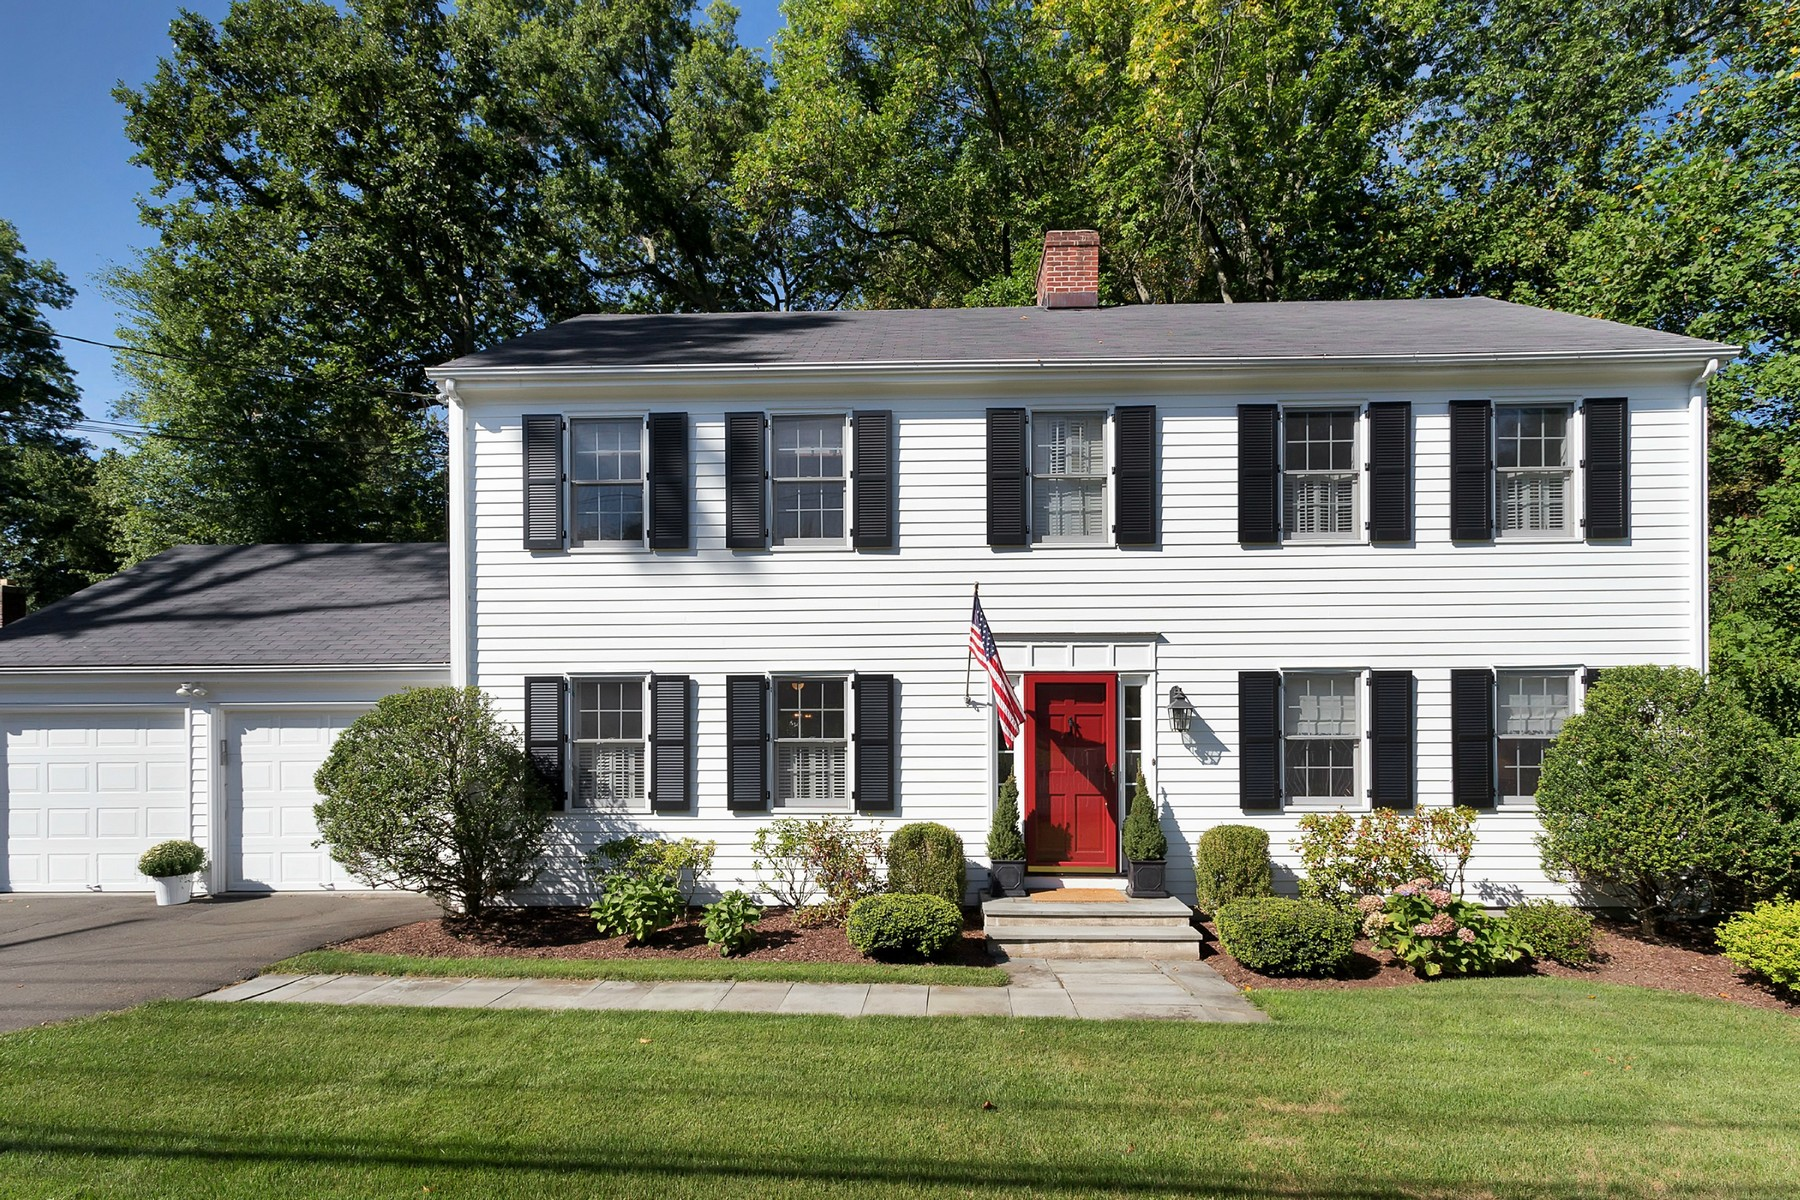 Single Family Home for Sale at In-Town Renovated Classic 121 Leroy Darien, Connecticut, 06820 United States